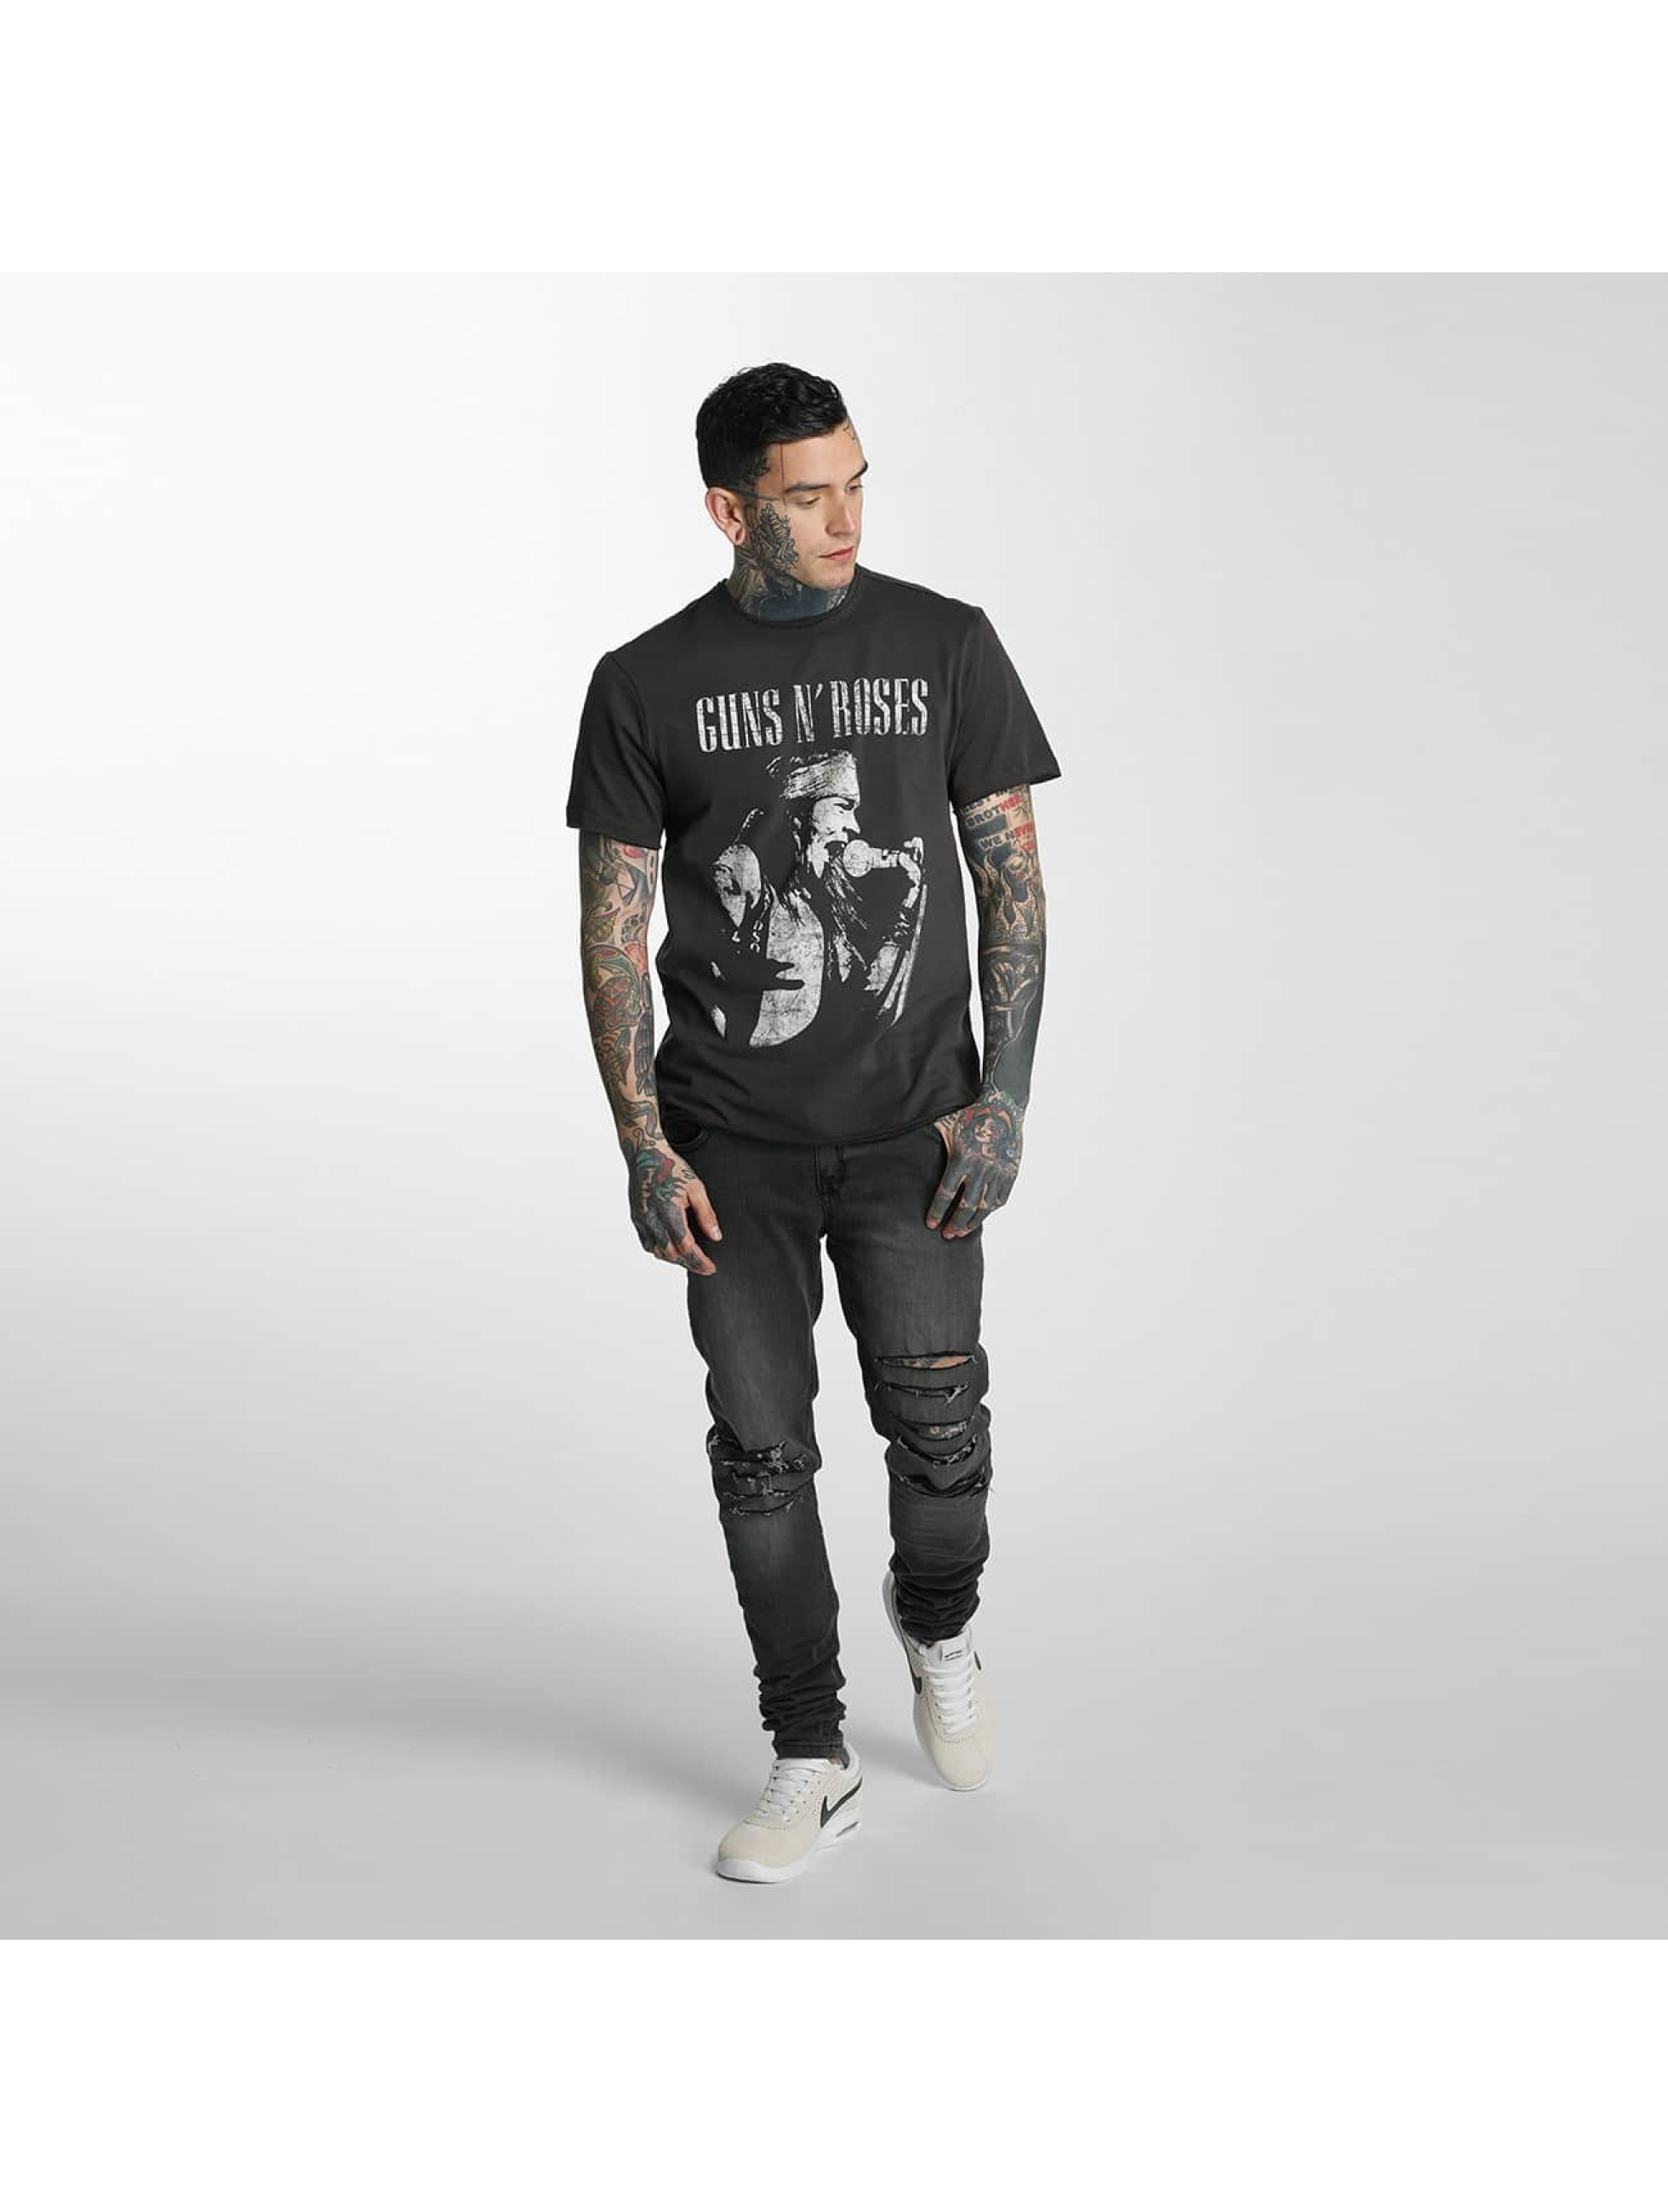 Amplified T-Shirt Guns & Roses Axel Life Profile grey